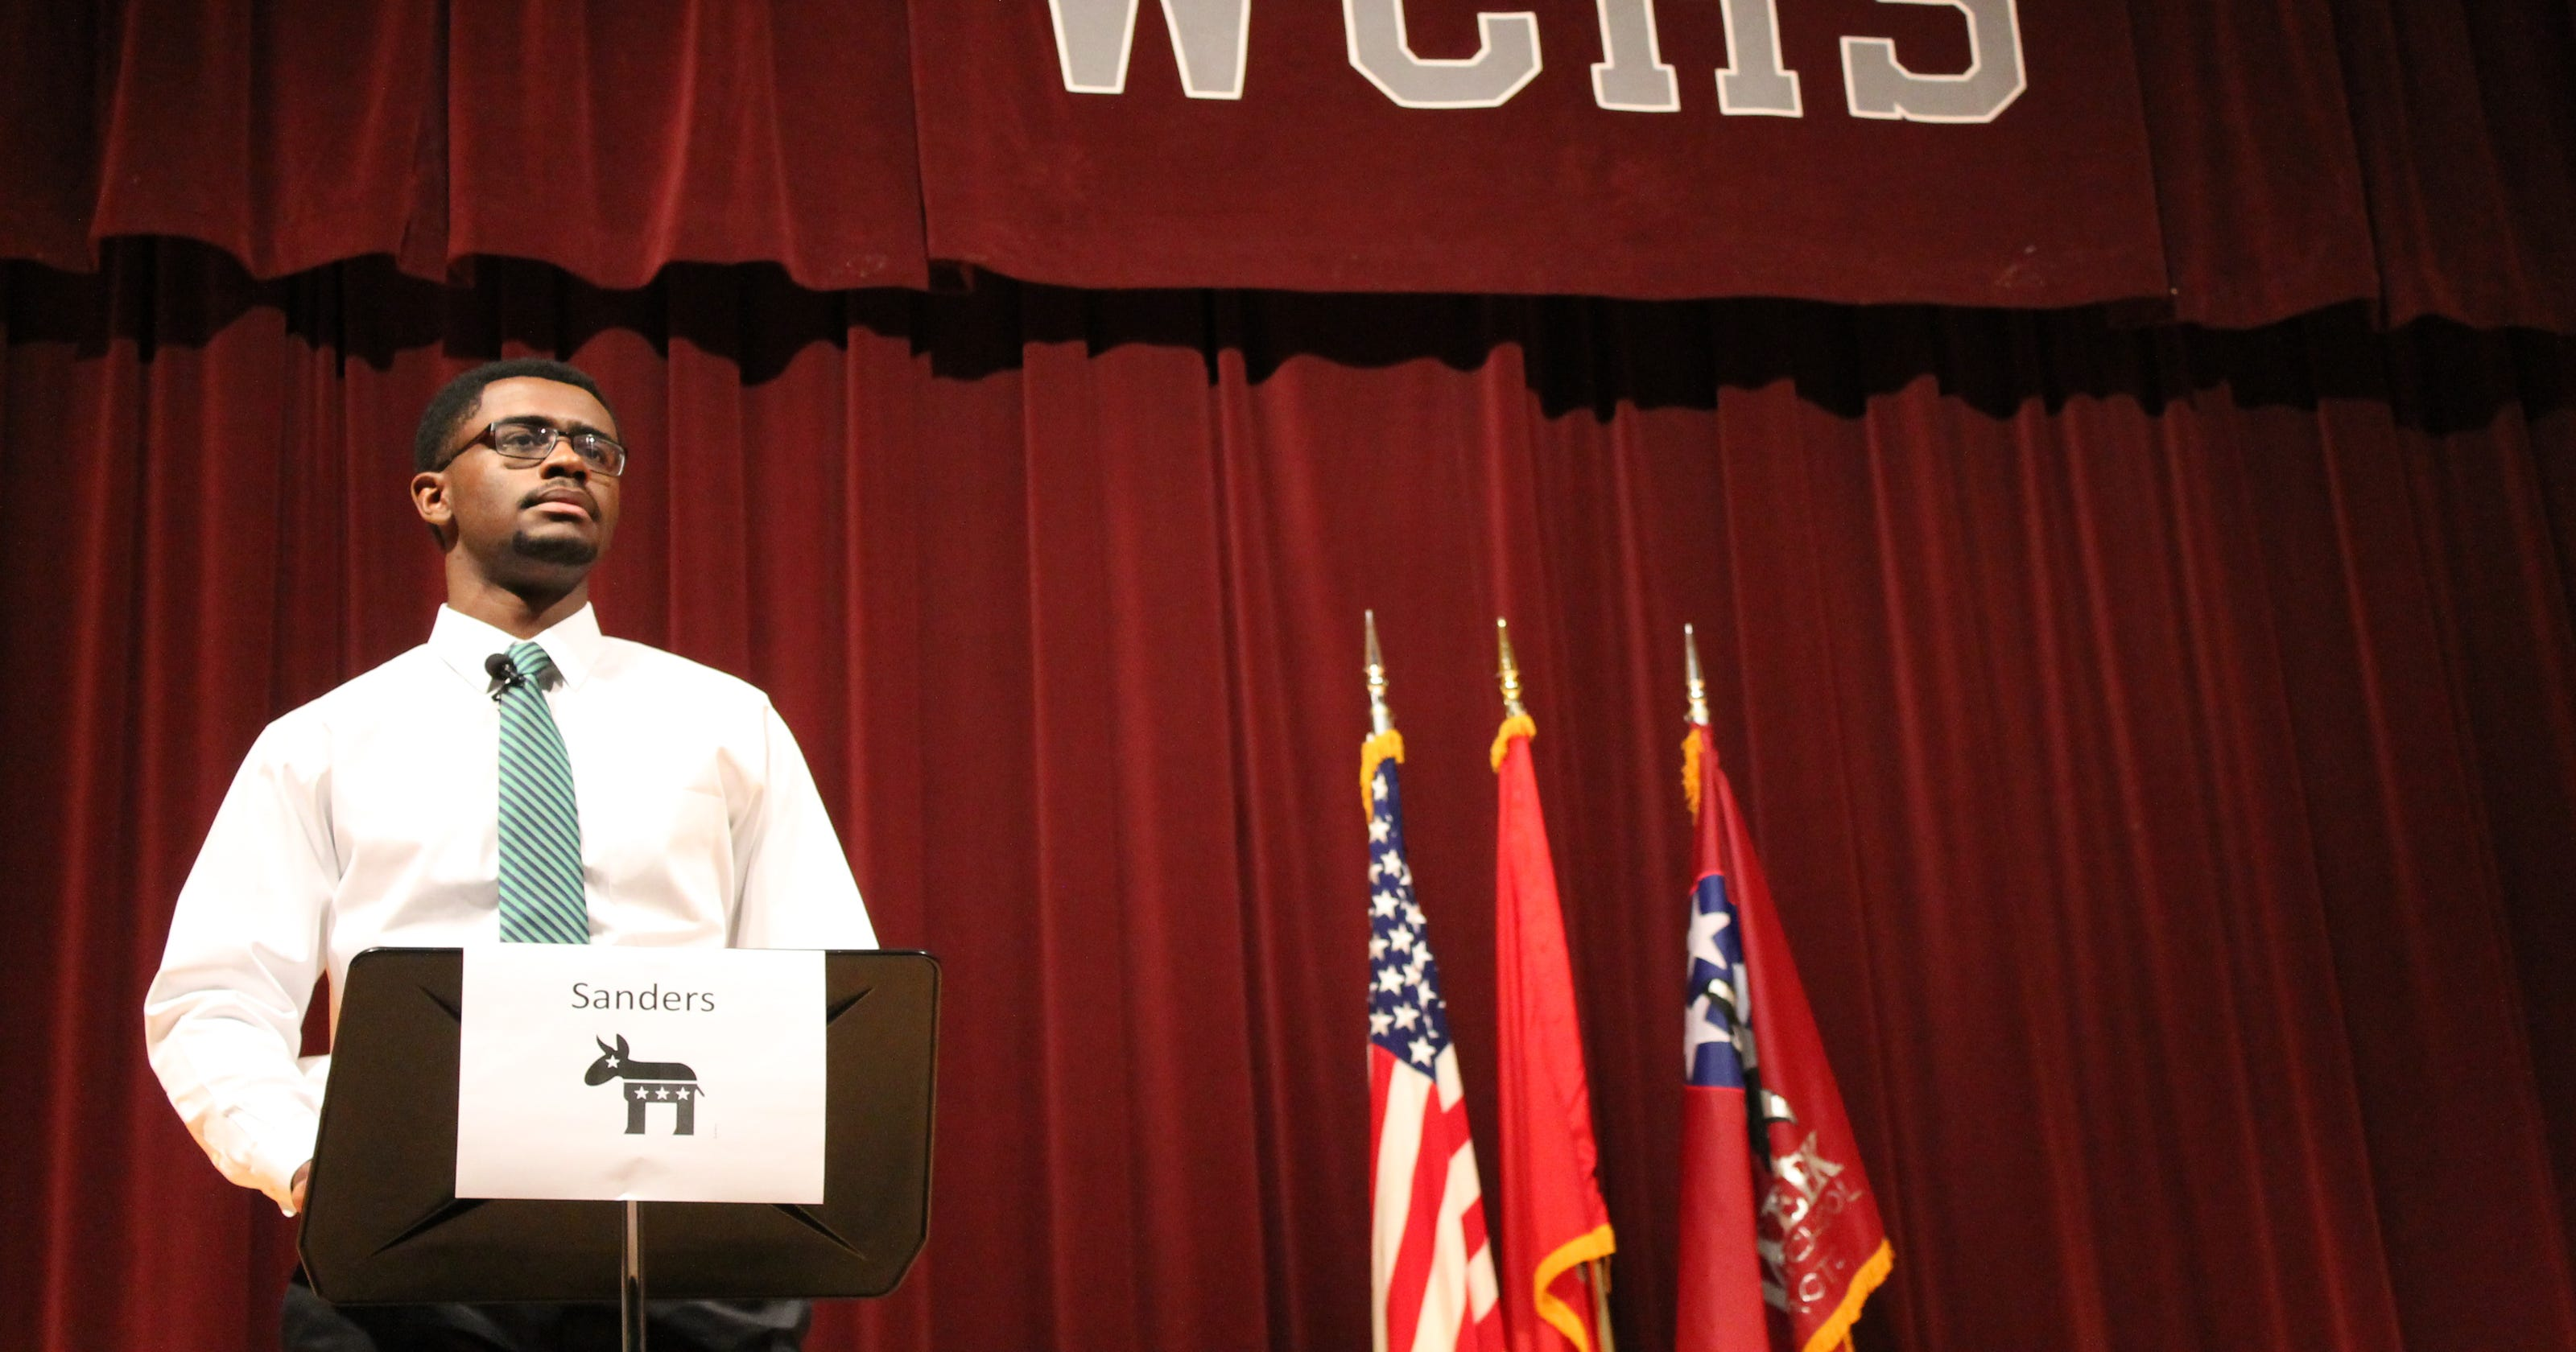 WCHS student debate inspires young voters